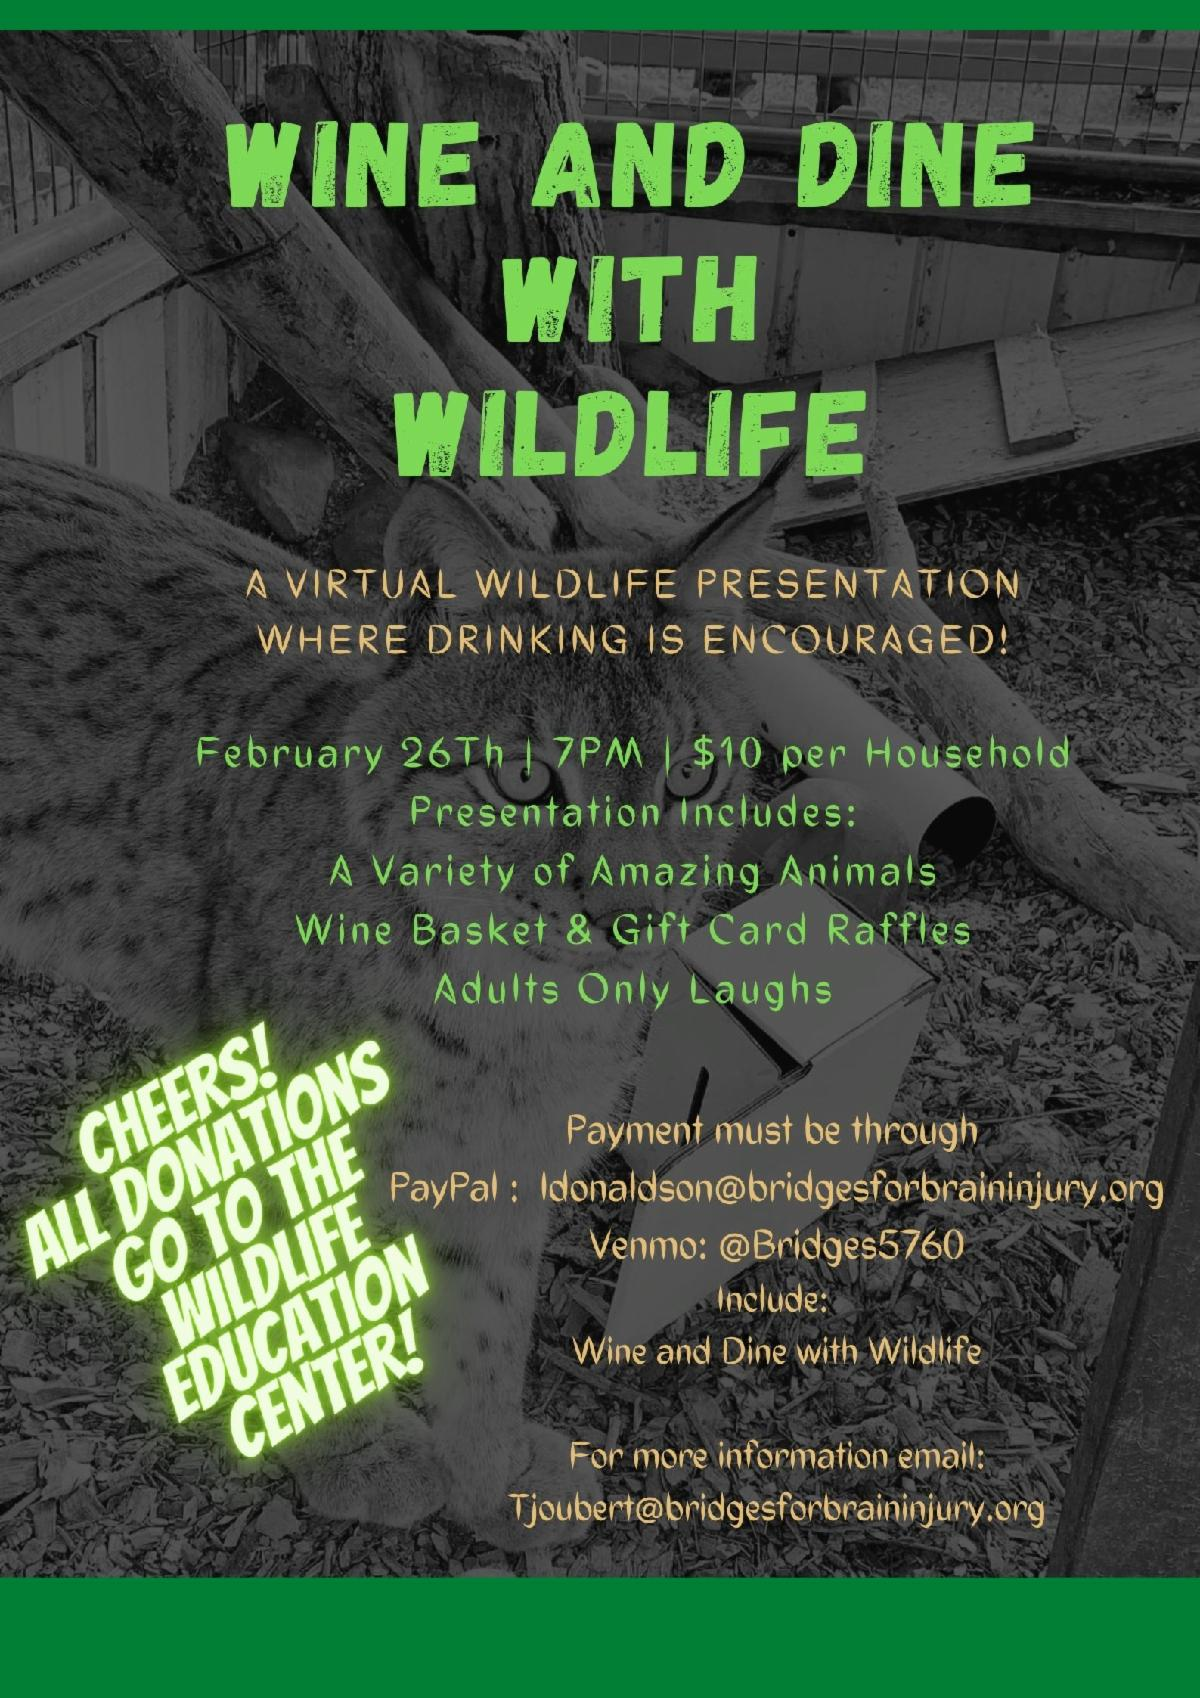 9d7f3929 5661 40f8 bb6e 73ca5b09b1fe - Wine And Dine With Wildlife Fundraising Event